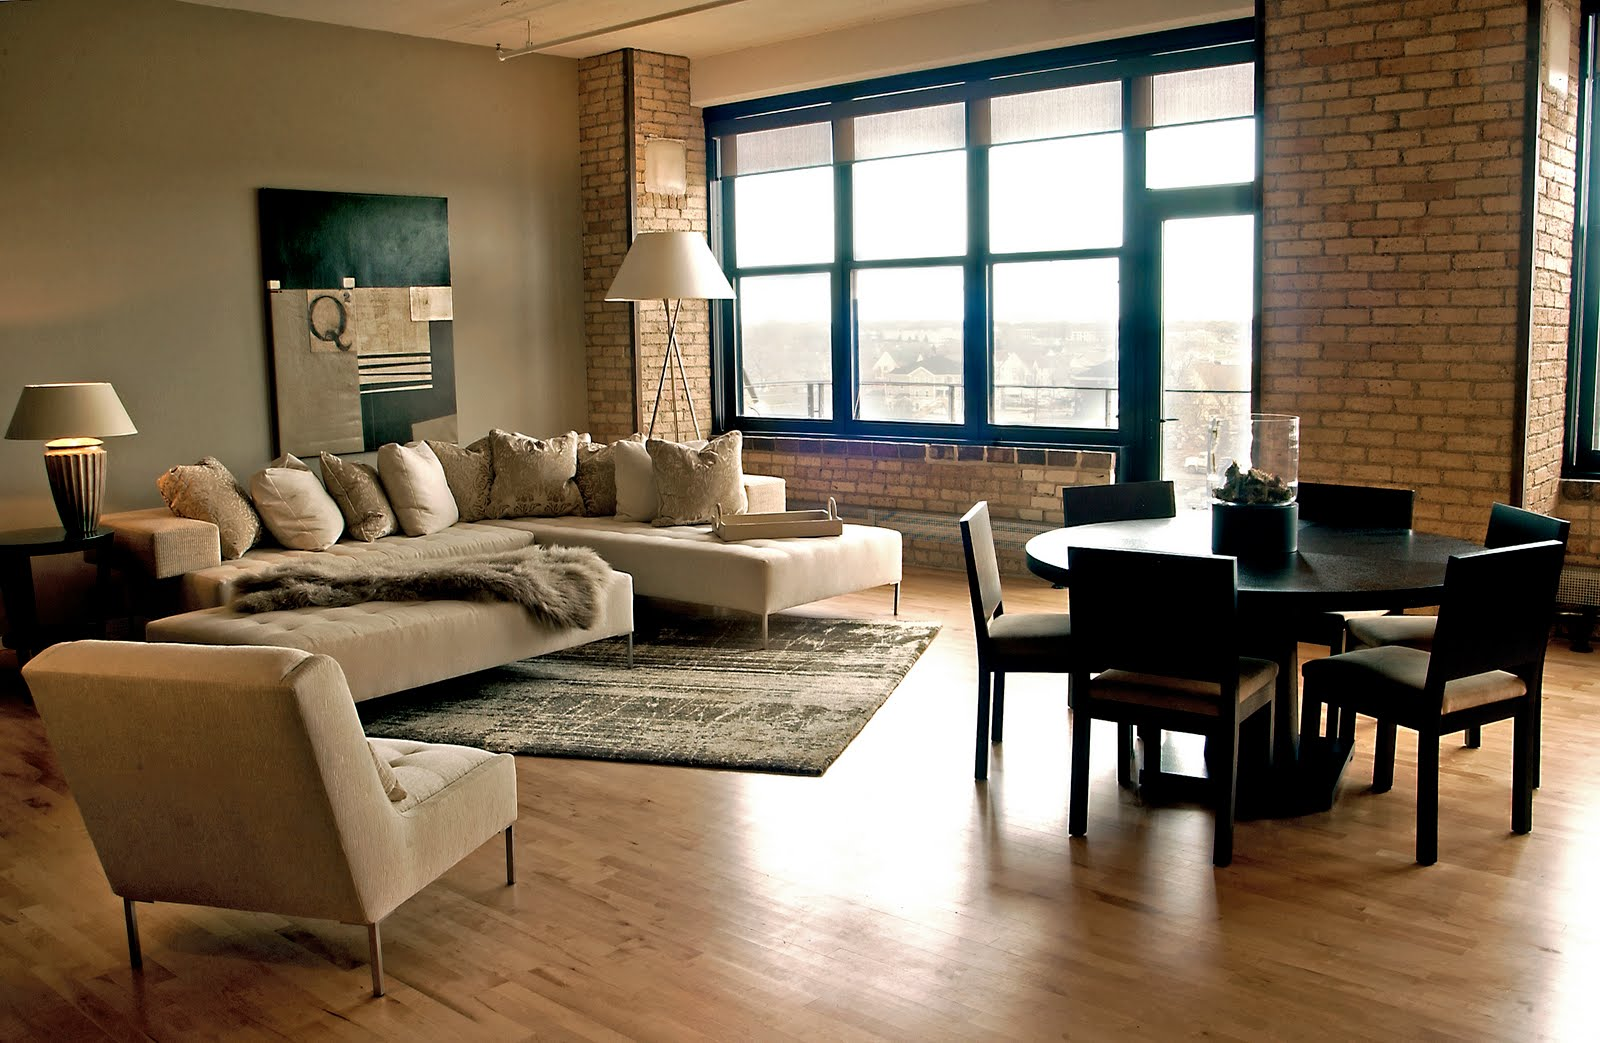 Flora angela brama lofts of ims Loft living room ideas